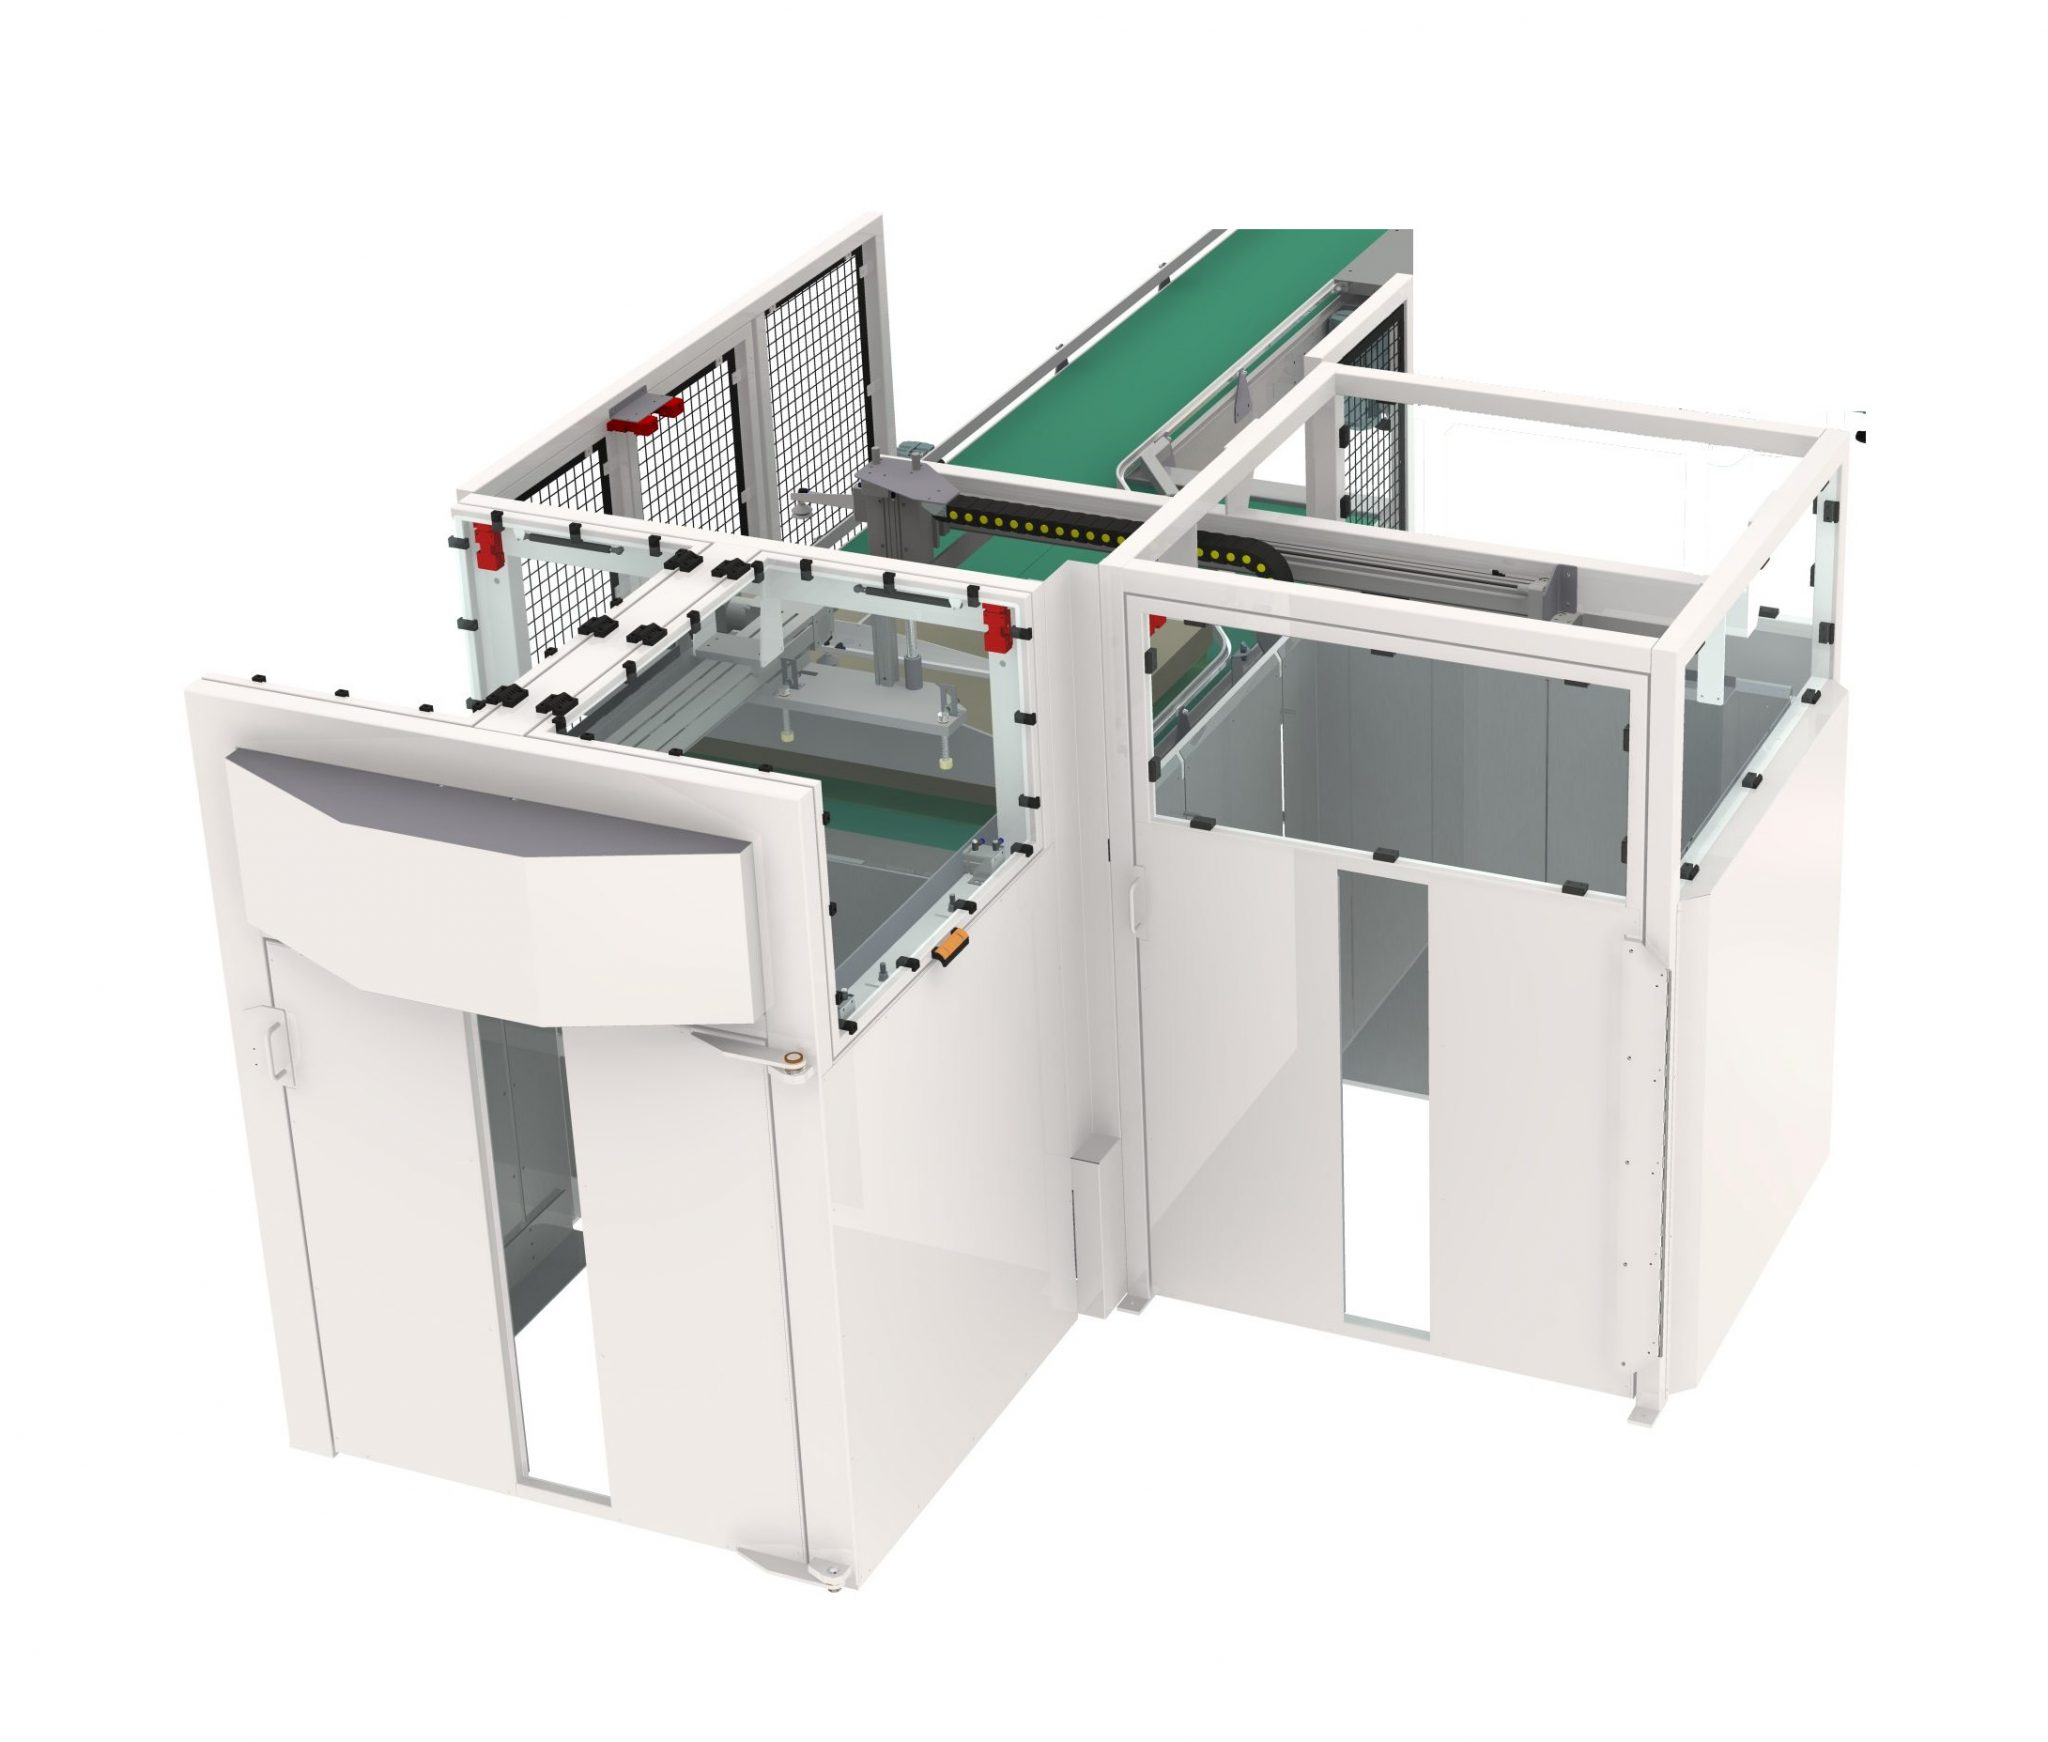 A palletiser and de-palletiser designed and manufactured by Asmech Systems limited.